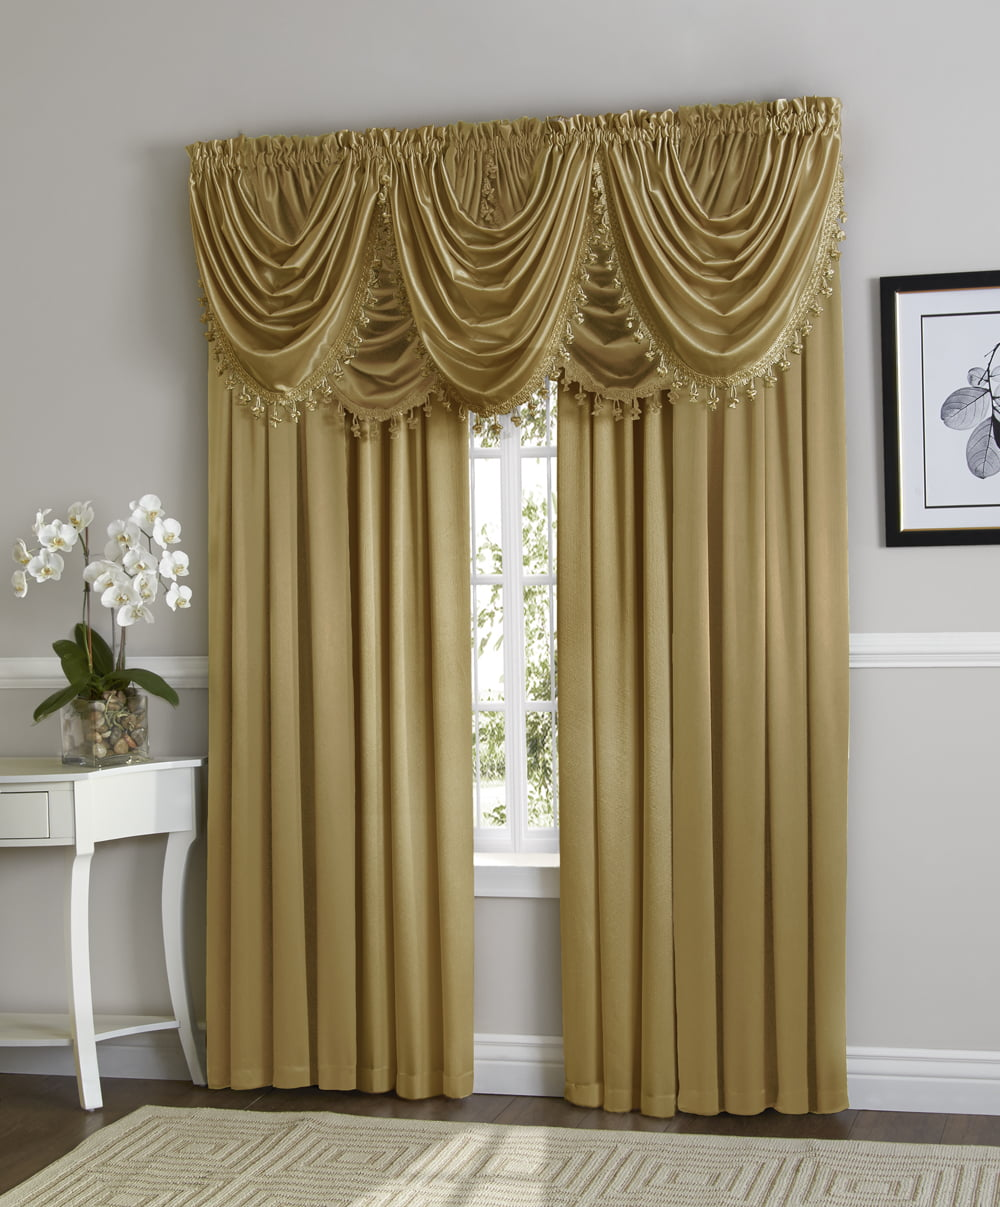 Hyatt Window Curtain & Fringed Valance Complete 9 Piece Window Treatment Set Antique by